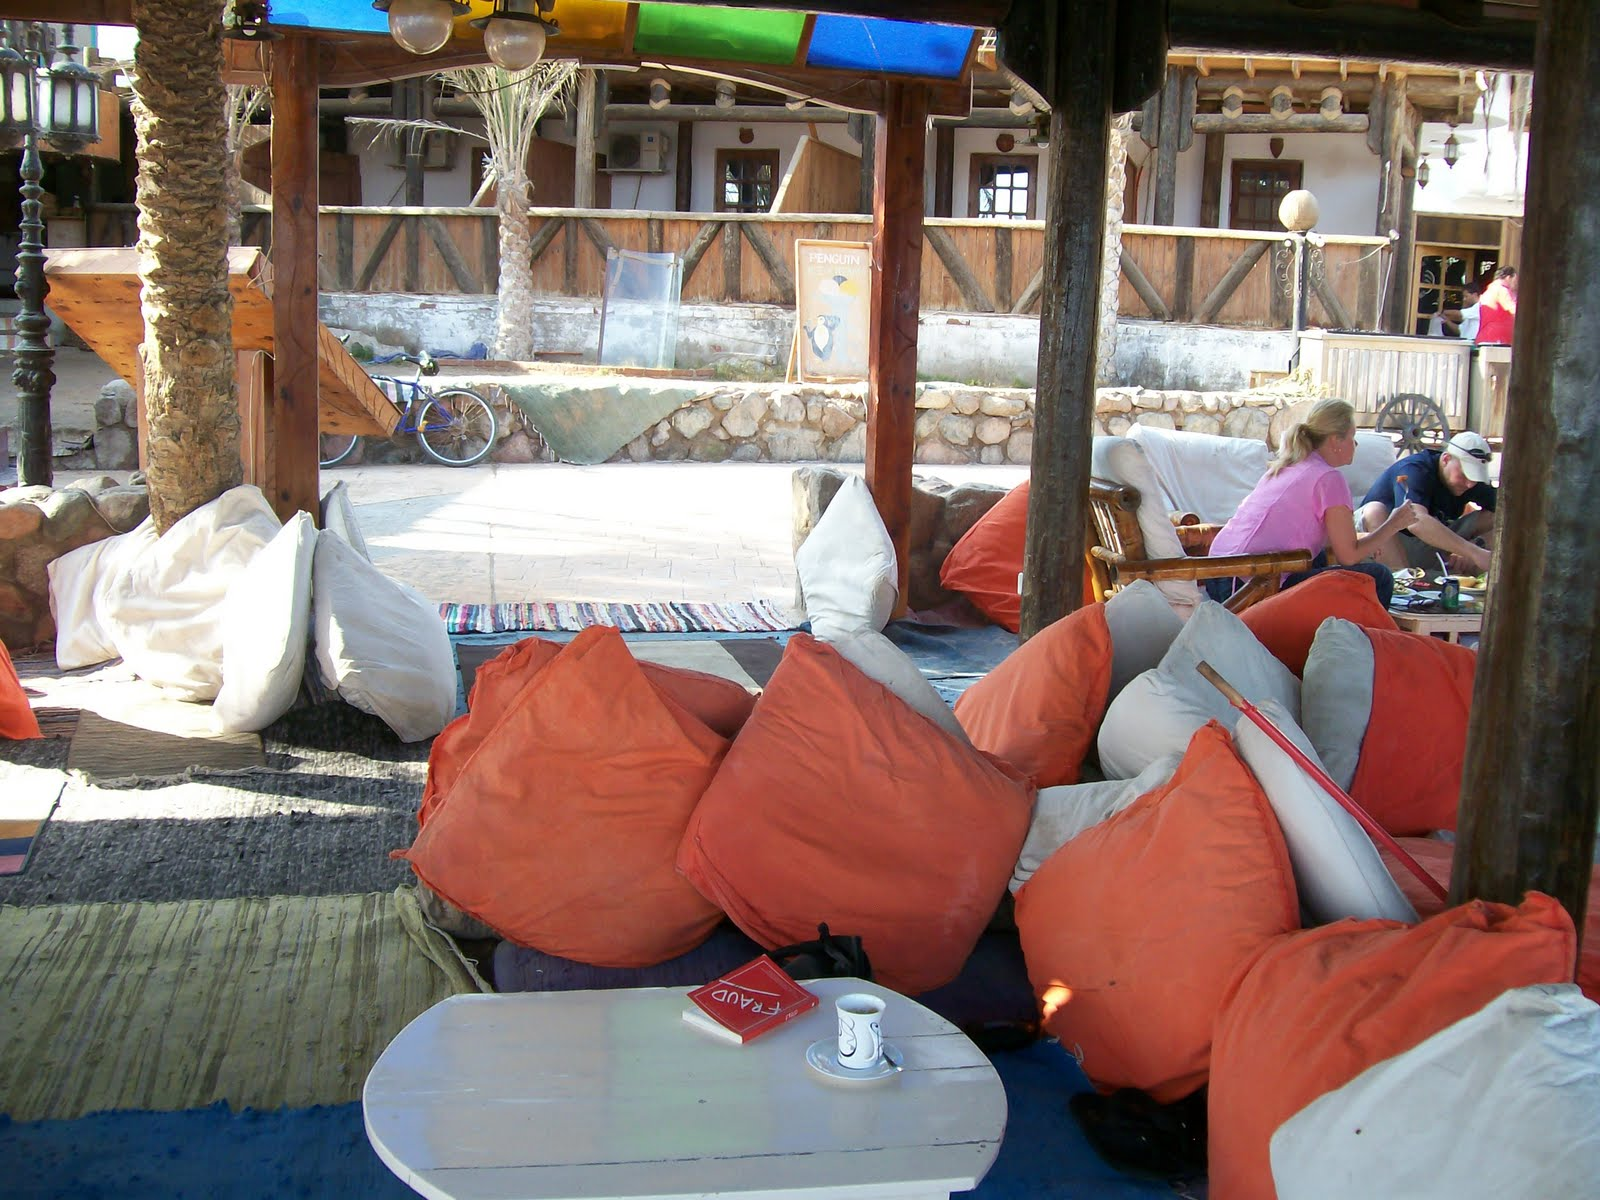 sara's travel page: Dahab - Diving, Electronica music and Pillows